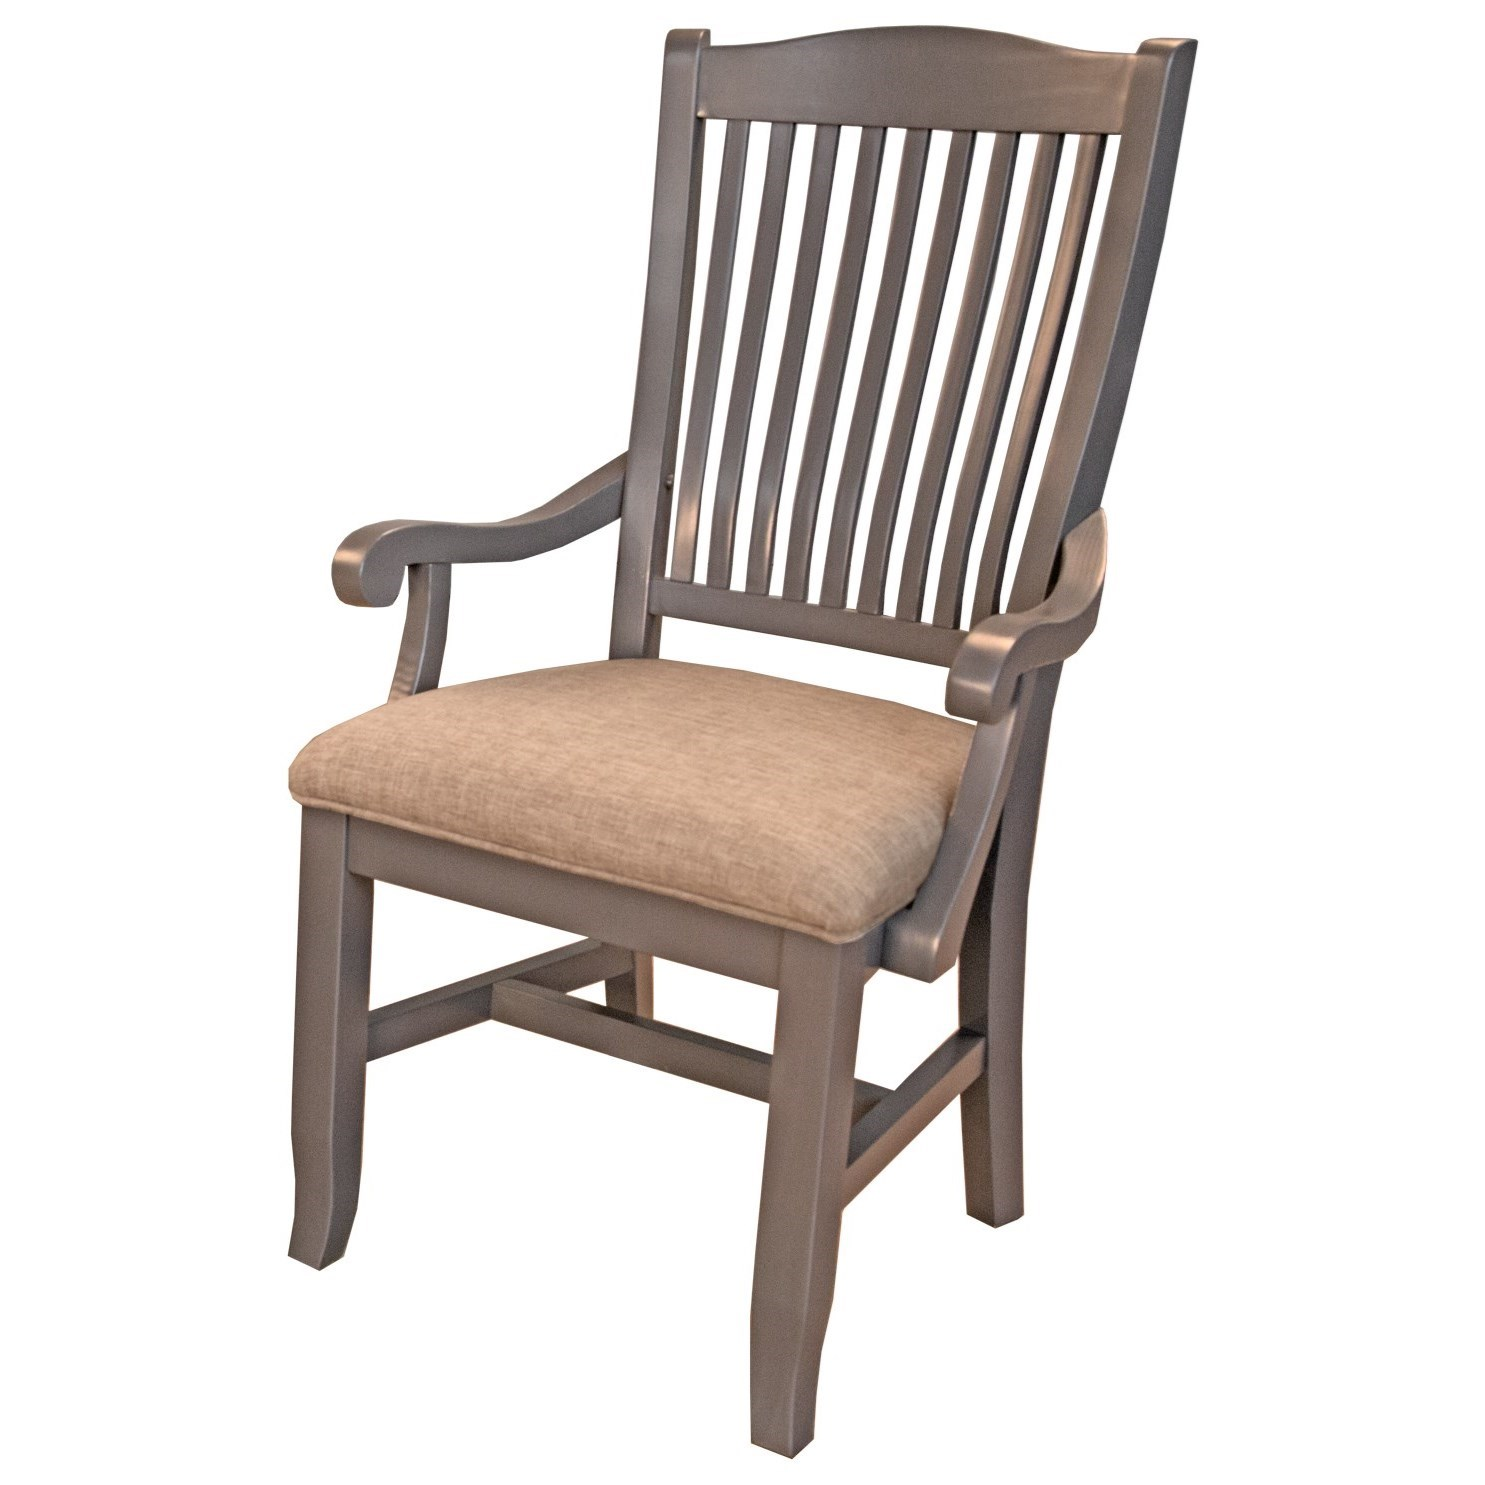 Port Townsend Slatback Arm Chair with Upholstered Seat by AAmerica at Johnny Janosik